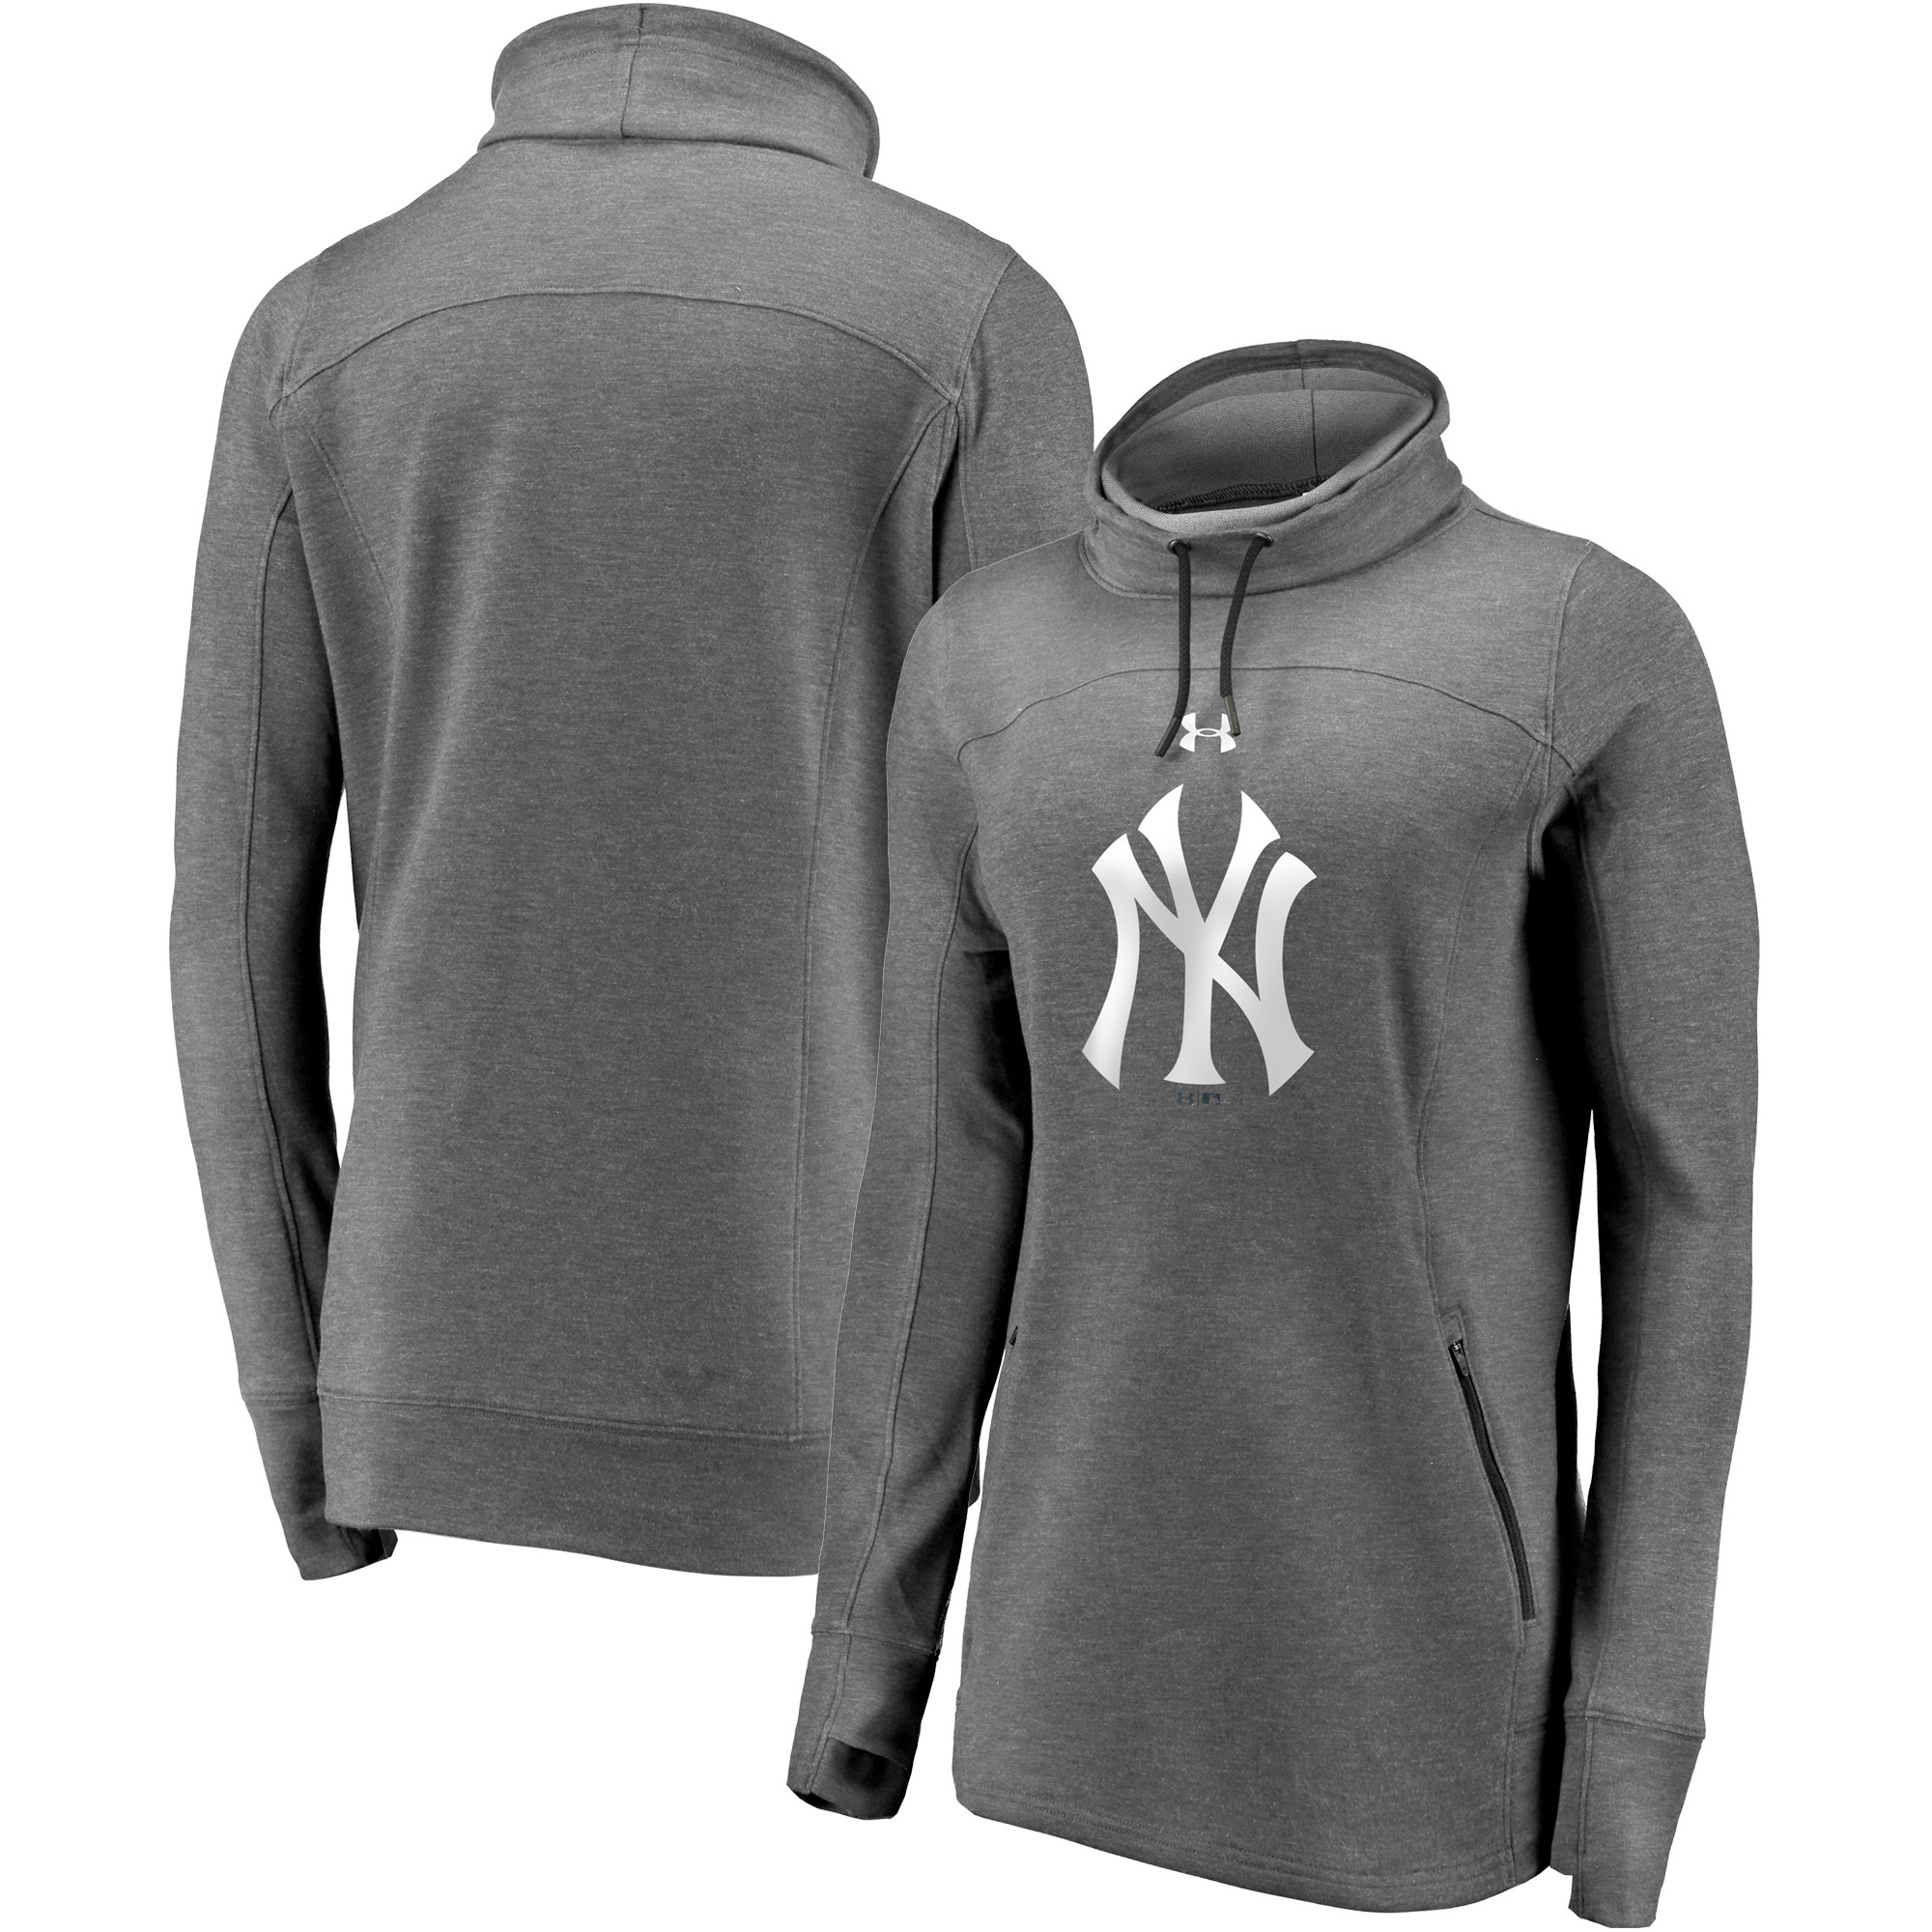 New York Yankees Under Armour Women's Team Mark Performance Tri-Blend Pullover Sweatshirt - Heathered Charcoal